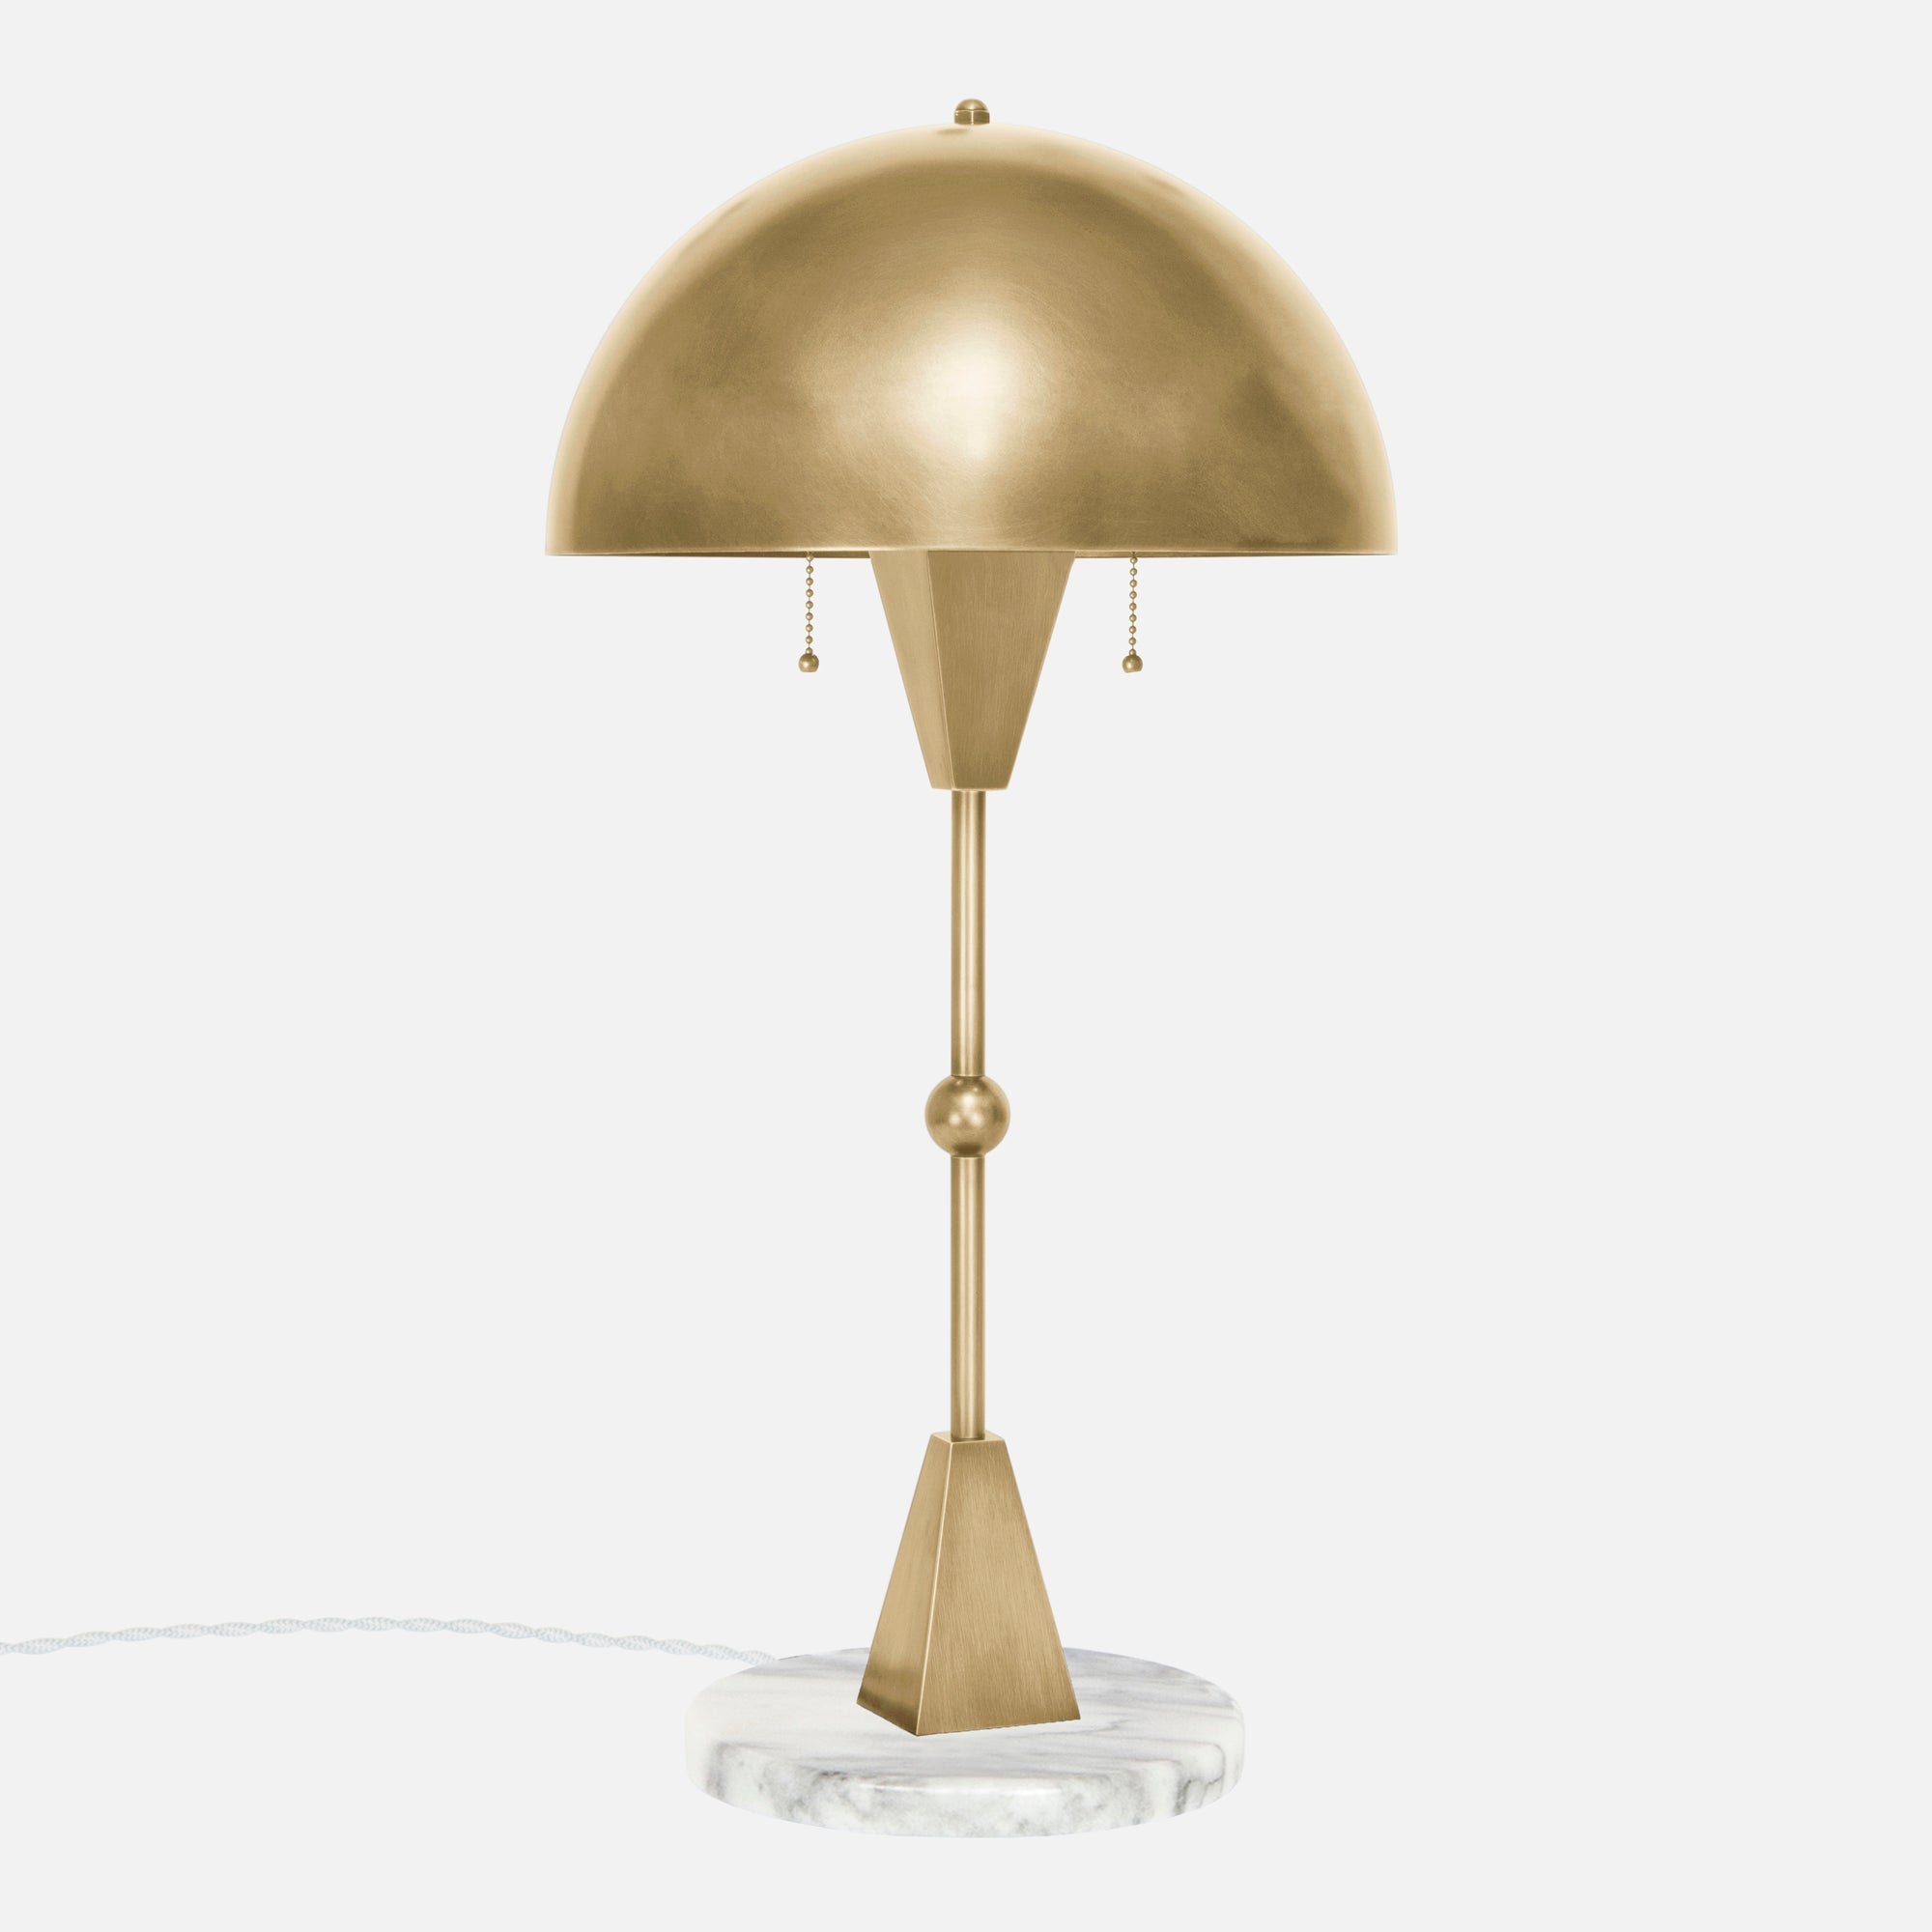 Dome Table Lamp in Satin Brass with White Marble Base - Side View